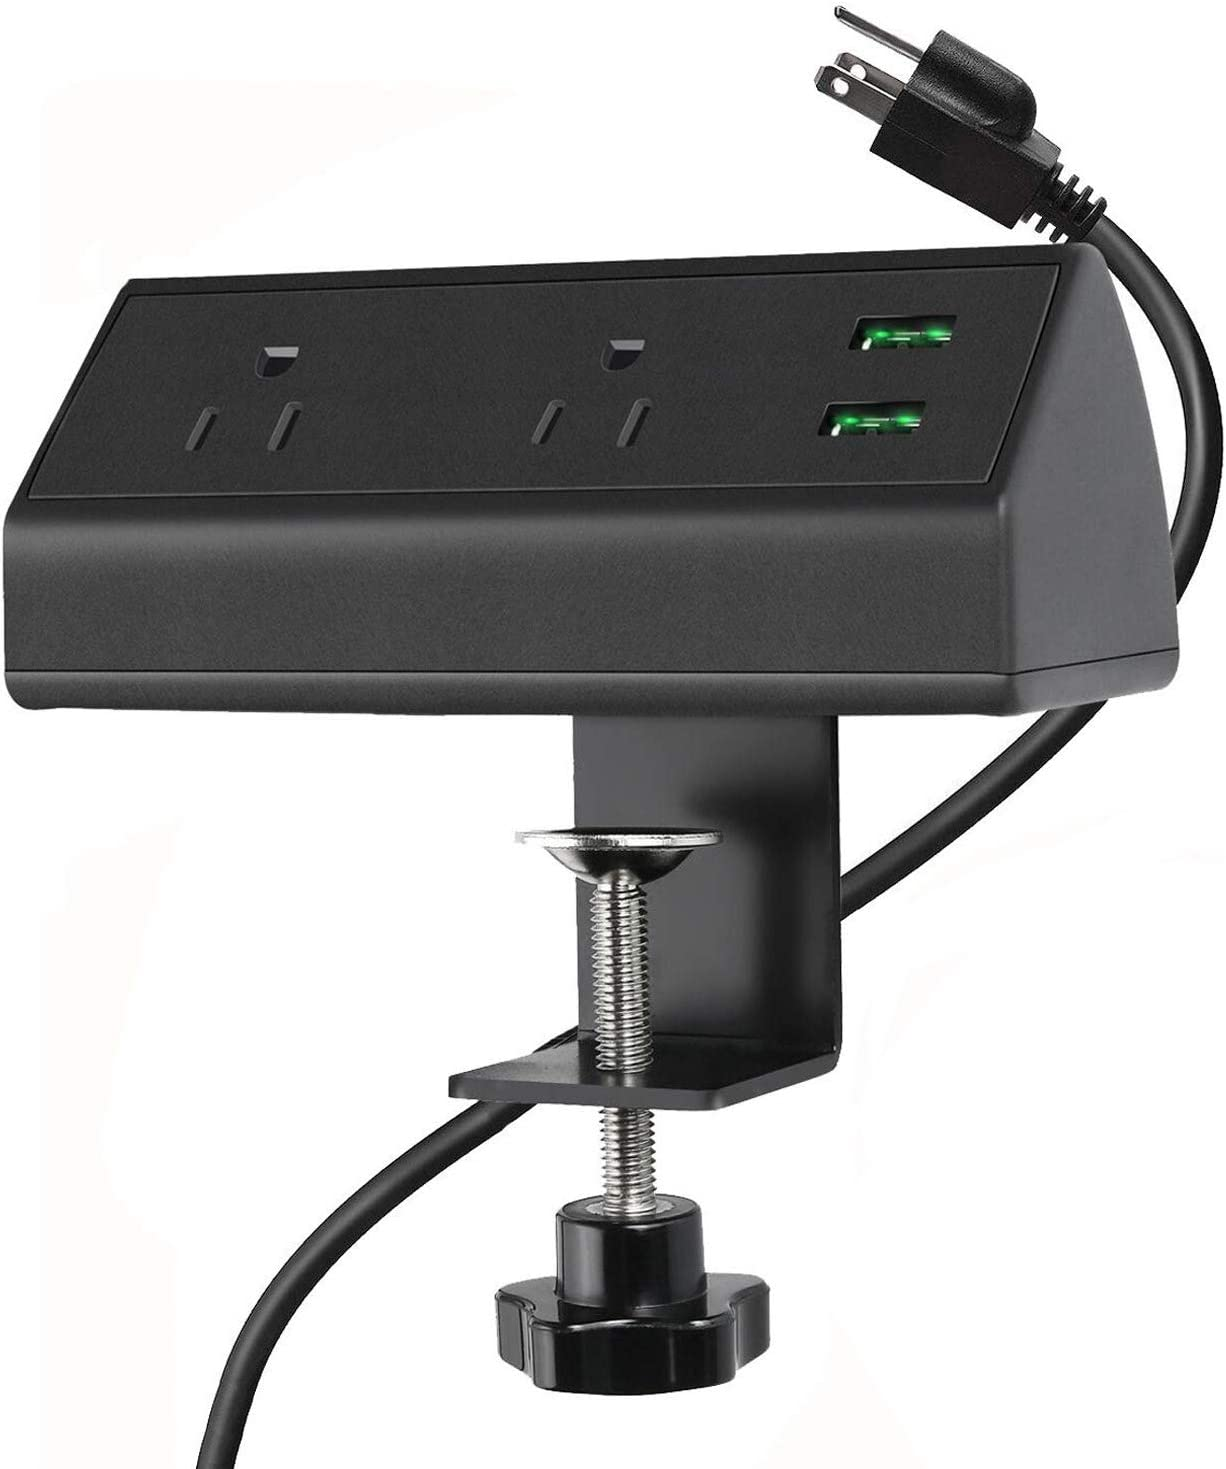 Desk Clamp Power Strip with USB, Desk Outlet Clamp Station with 2 AC Outlets, on Desk Mount Power Strip